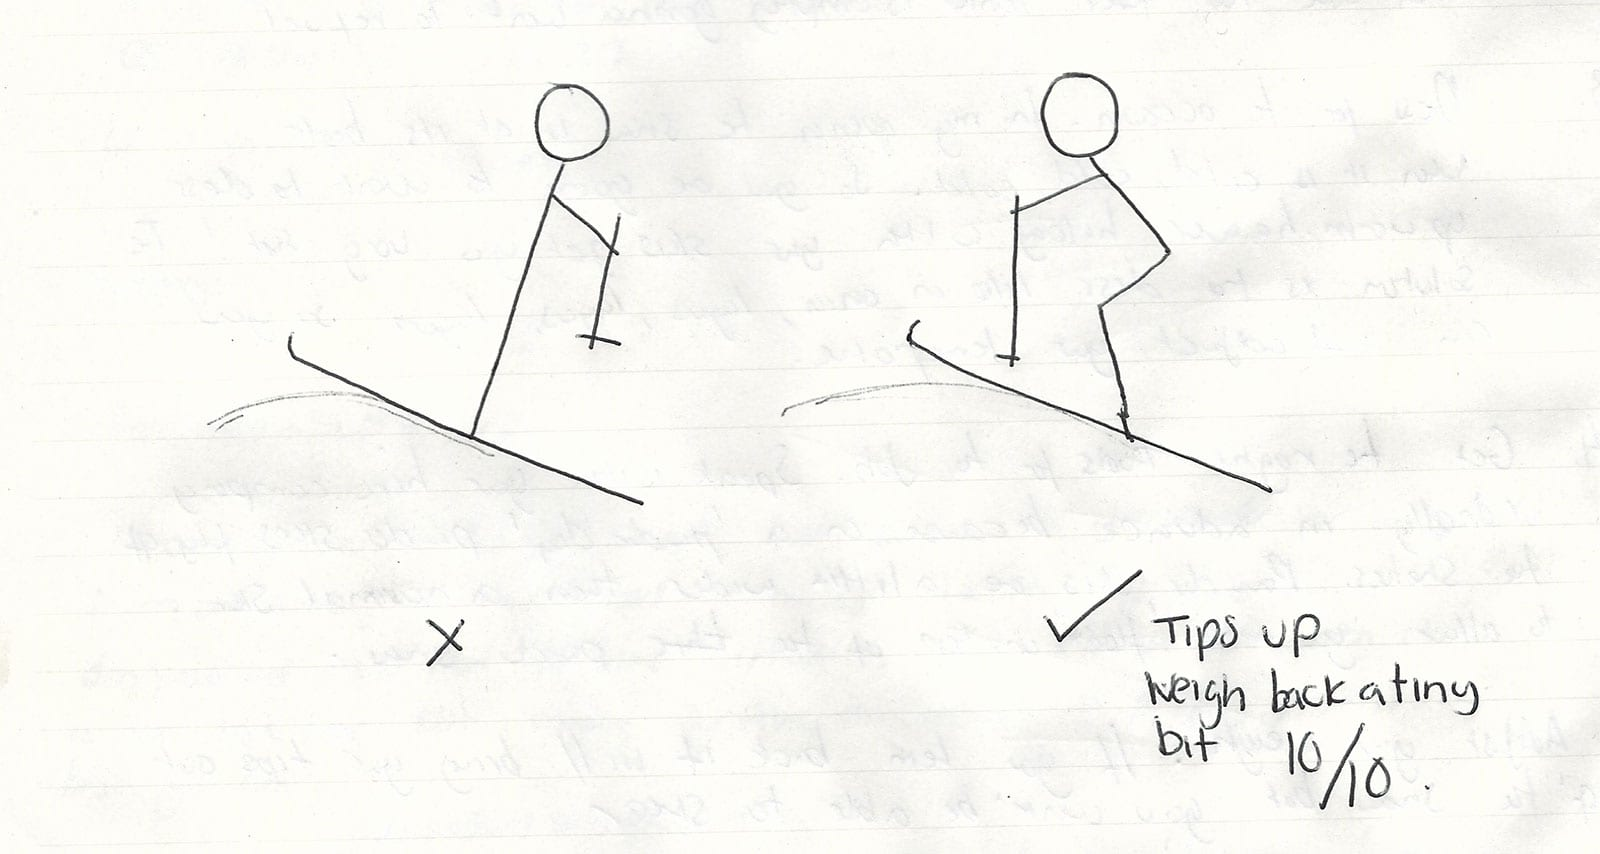 Off piste skiing tips, adjust your weight